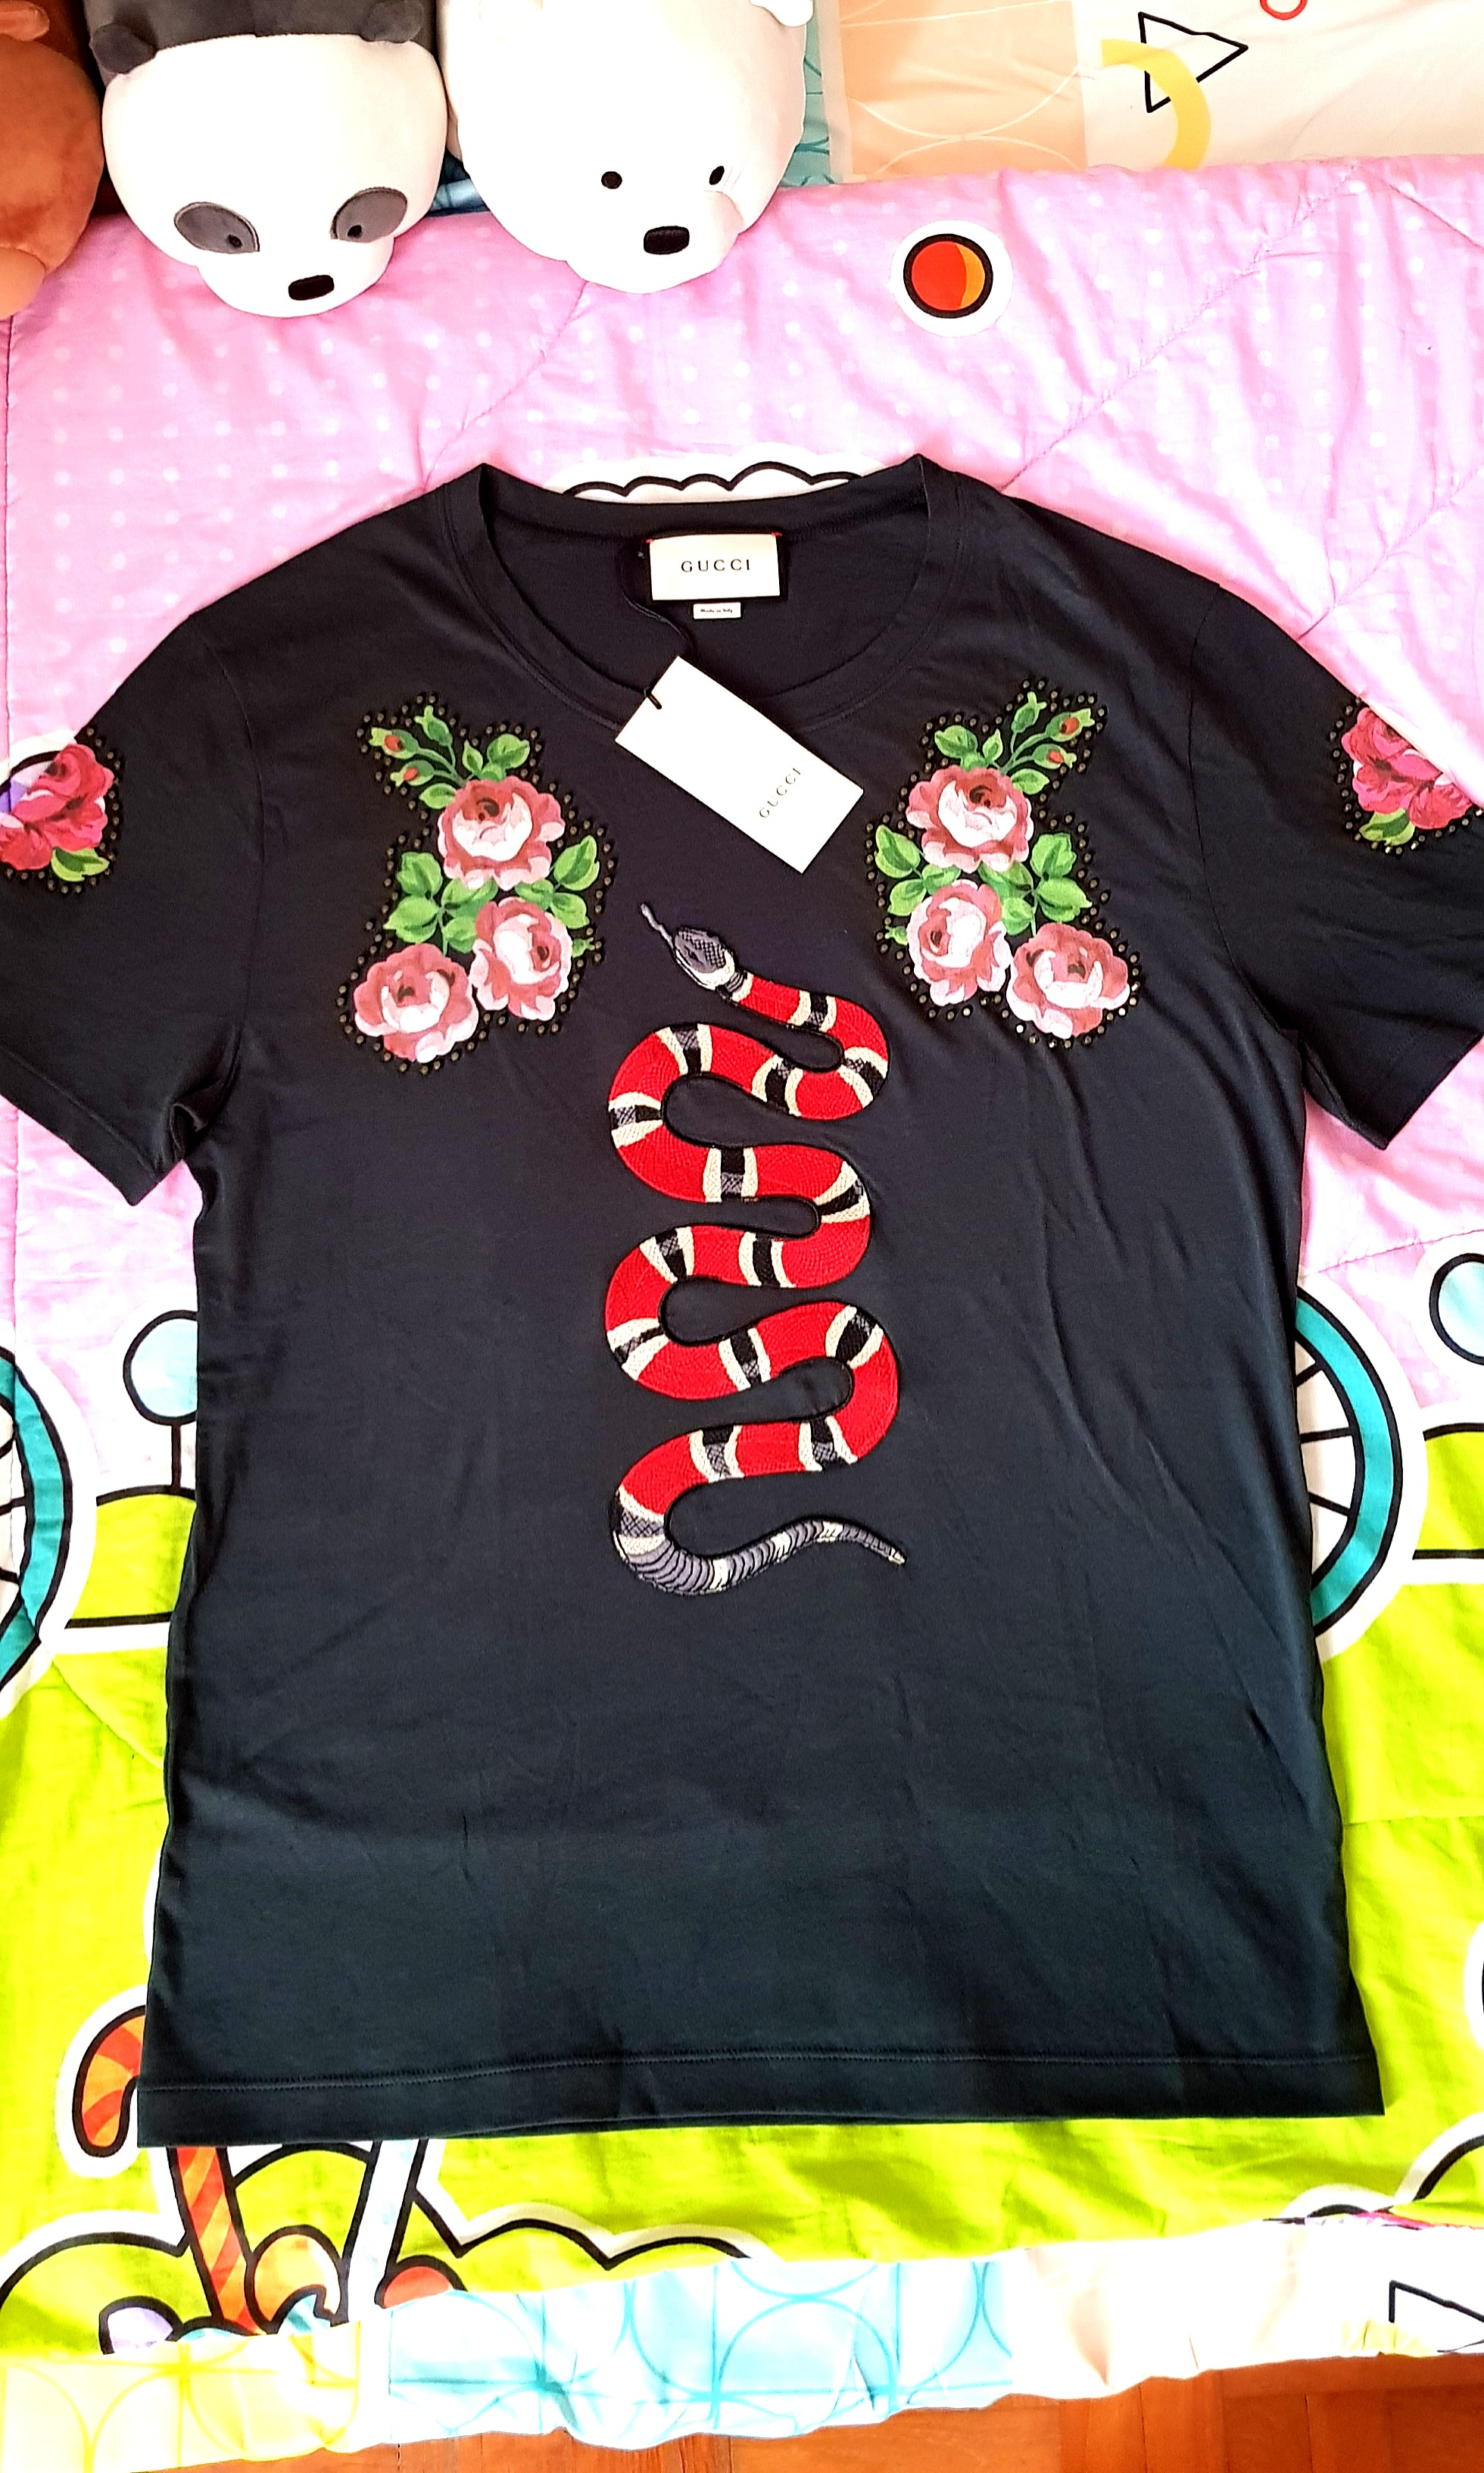 a8207bca Brand New Gucci King Snake Floral Studs Black Tee., Men's Fashion ...